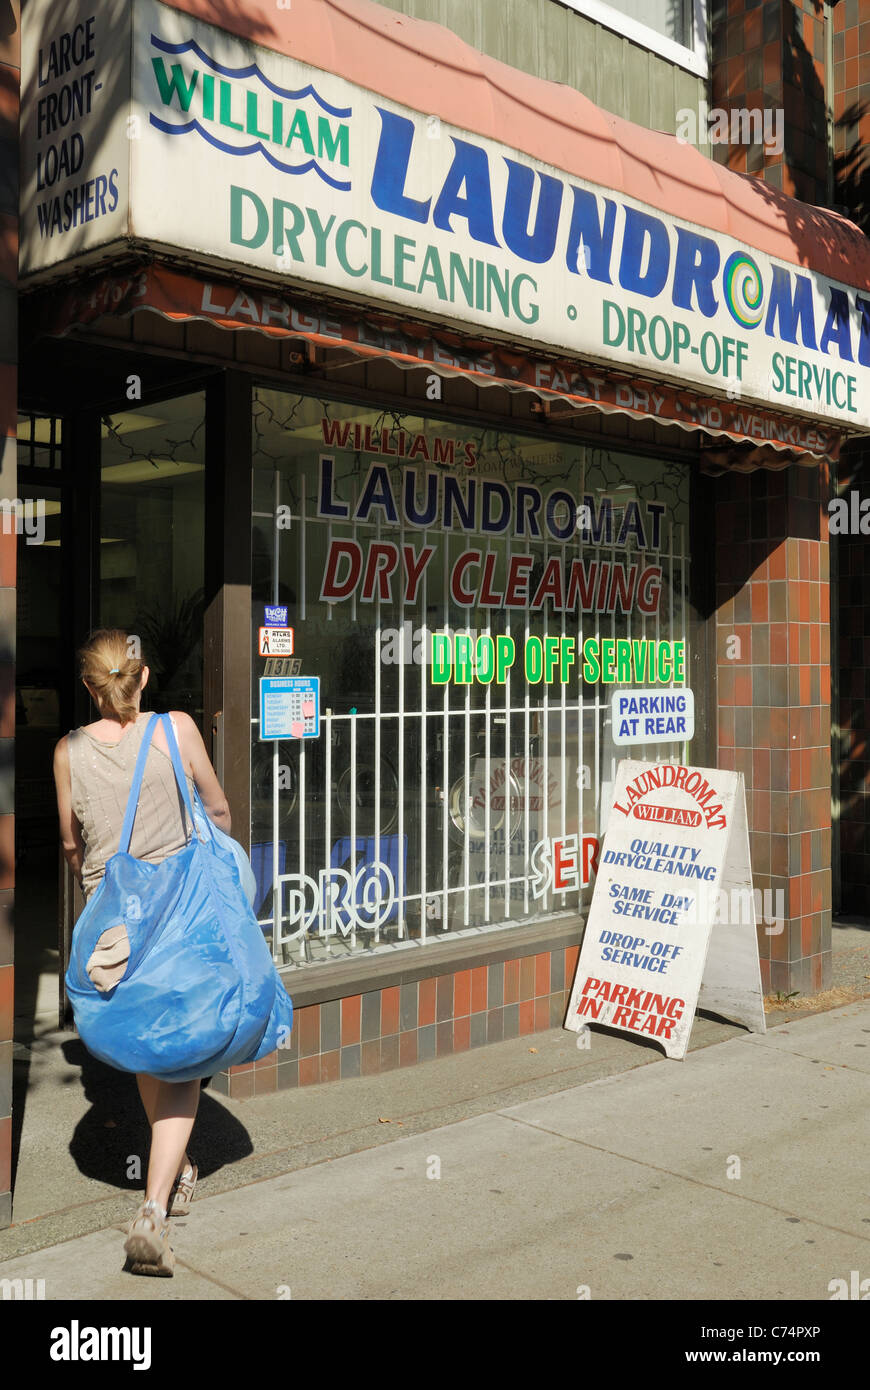 Female customer carrying her laundry entering a public laundromat located on Commercial Drive, Vancouver - Stock Image